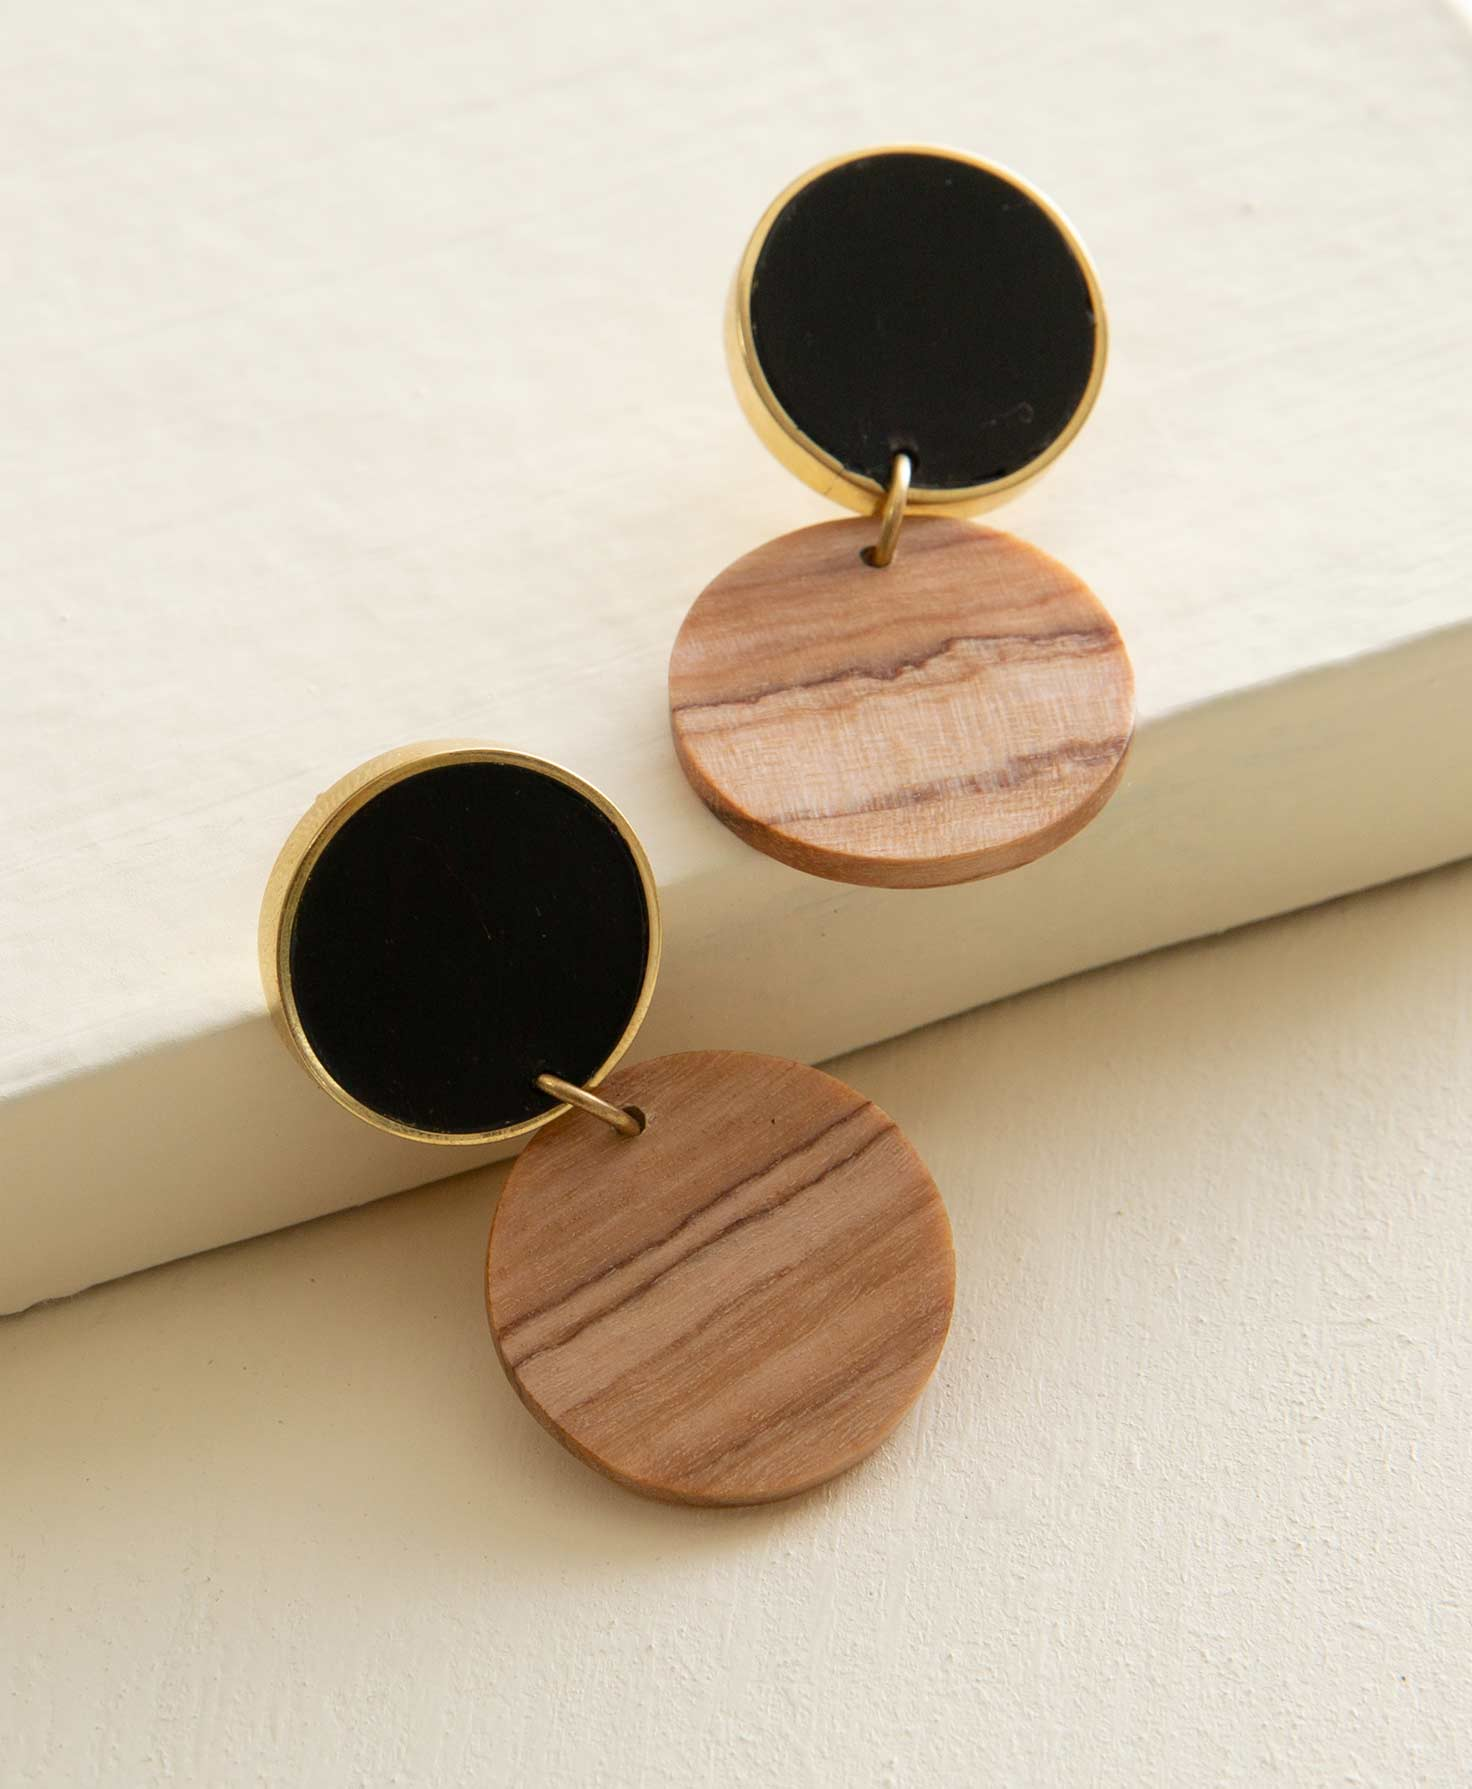 The Zeal Earrings sit propped against a cream colored block. They are post-style earrings composed of olive wood and horn. A flat circle made of matte black horn outlined in brass is connected to the ear post. Connected to this via a brass jump ring is another flat disc made of wood. The wood has a medium shade and natural markings.